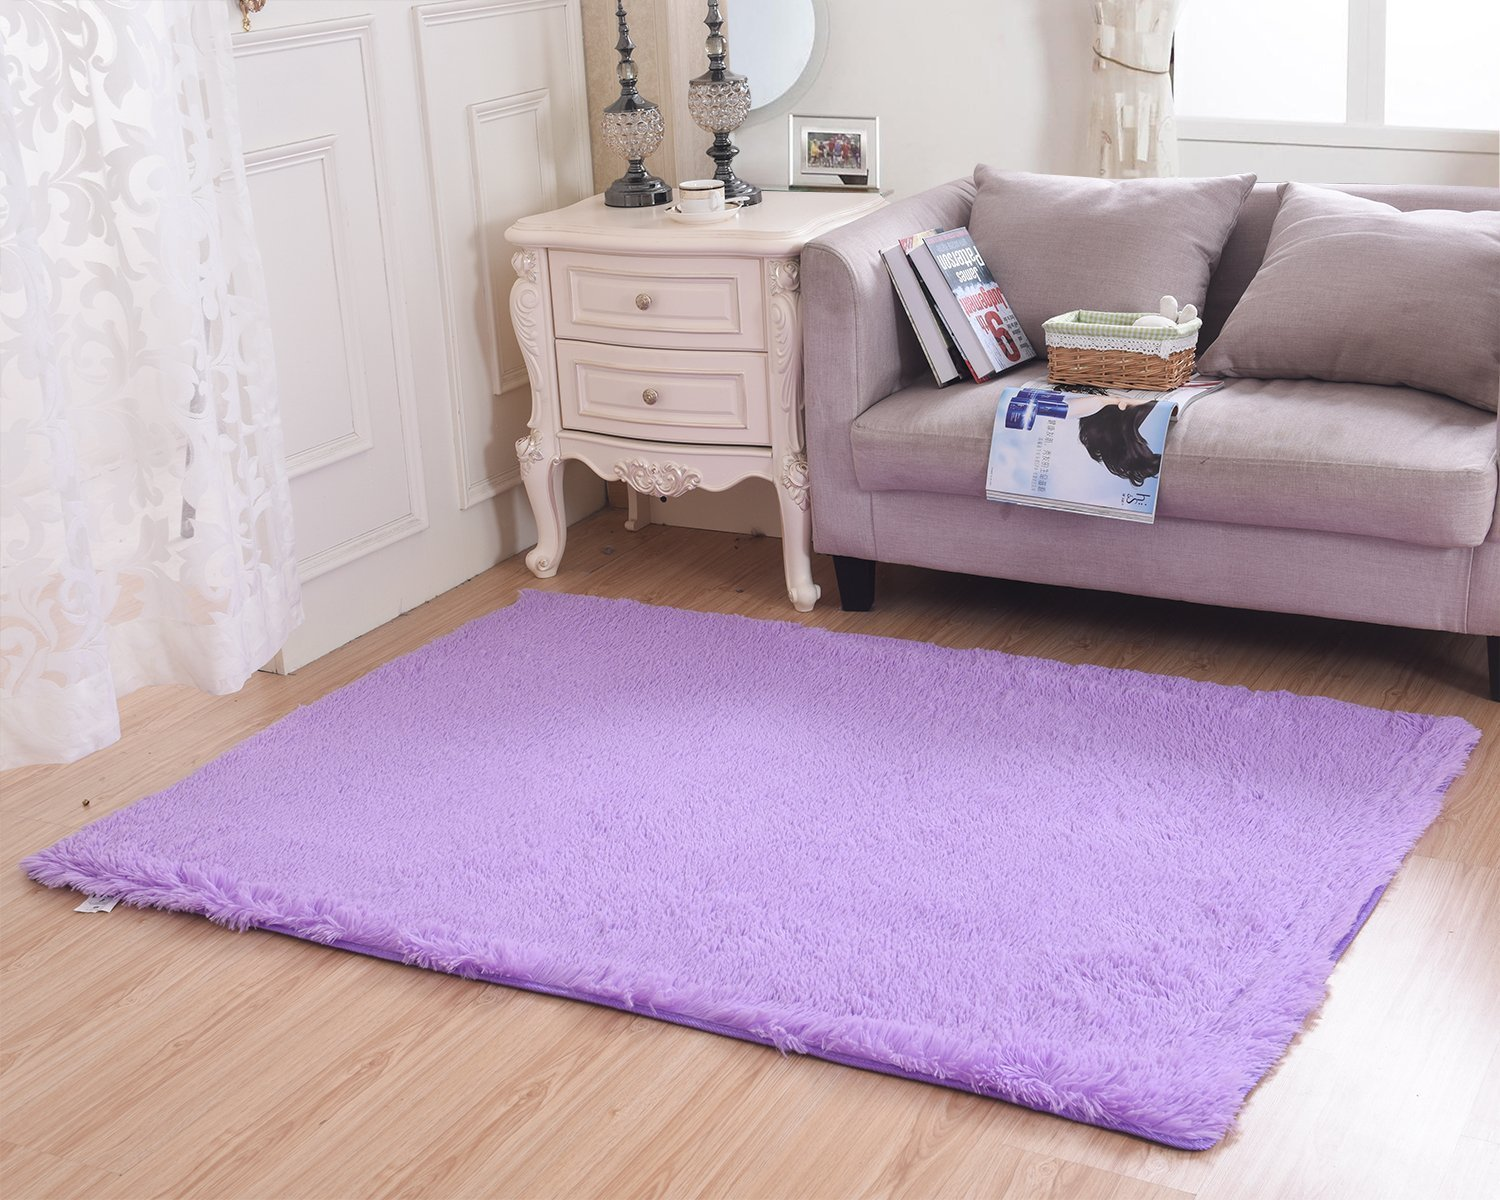 Living Room Rug, CWKTITI Super Soft Indoor Modern Shag Area Rugs Bedroom Rug for Children Play Solid Home Decorator Floor Rug and Carpets 4- Feet By 5- Feet, Purple